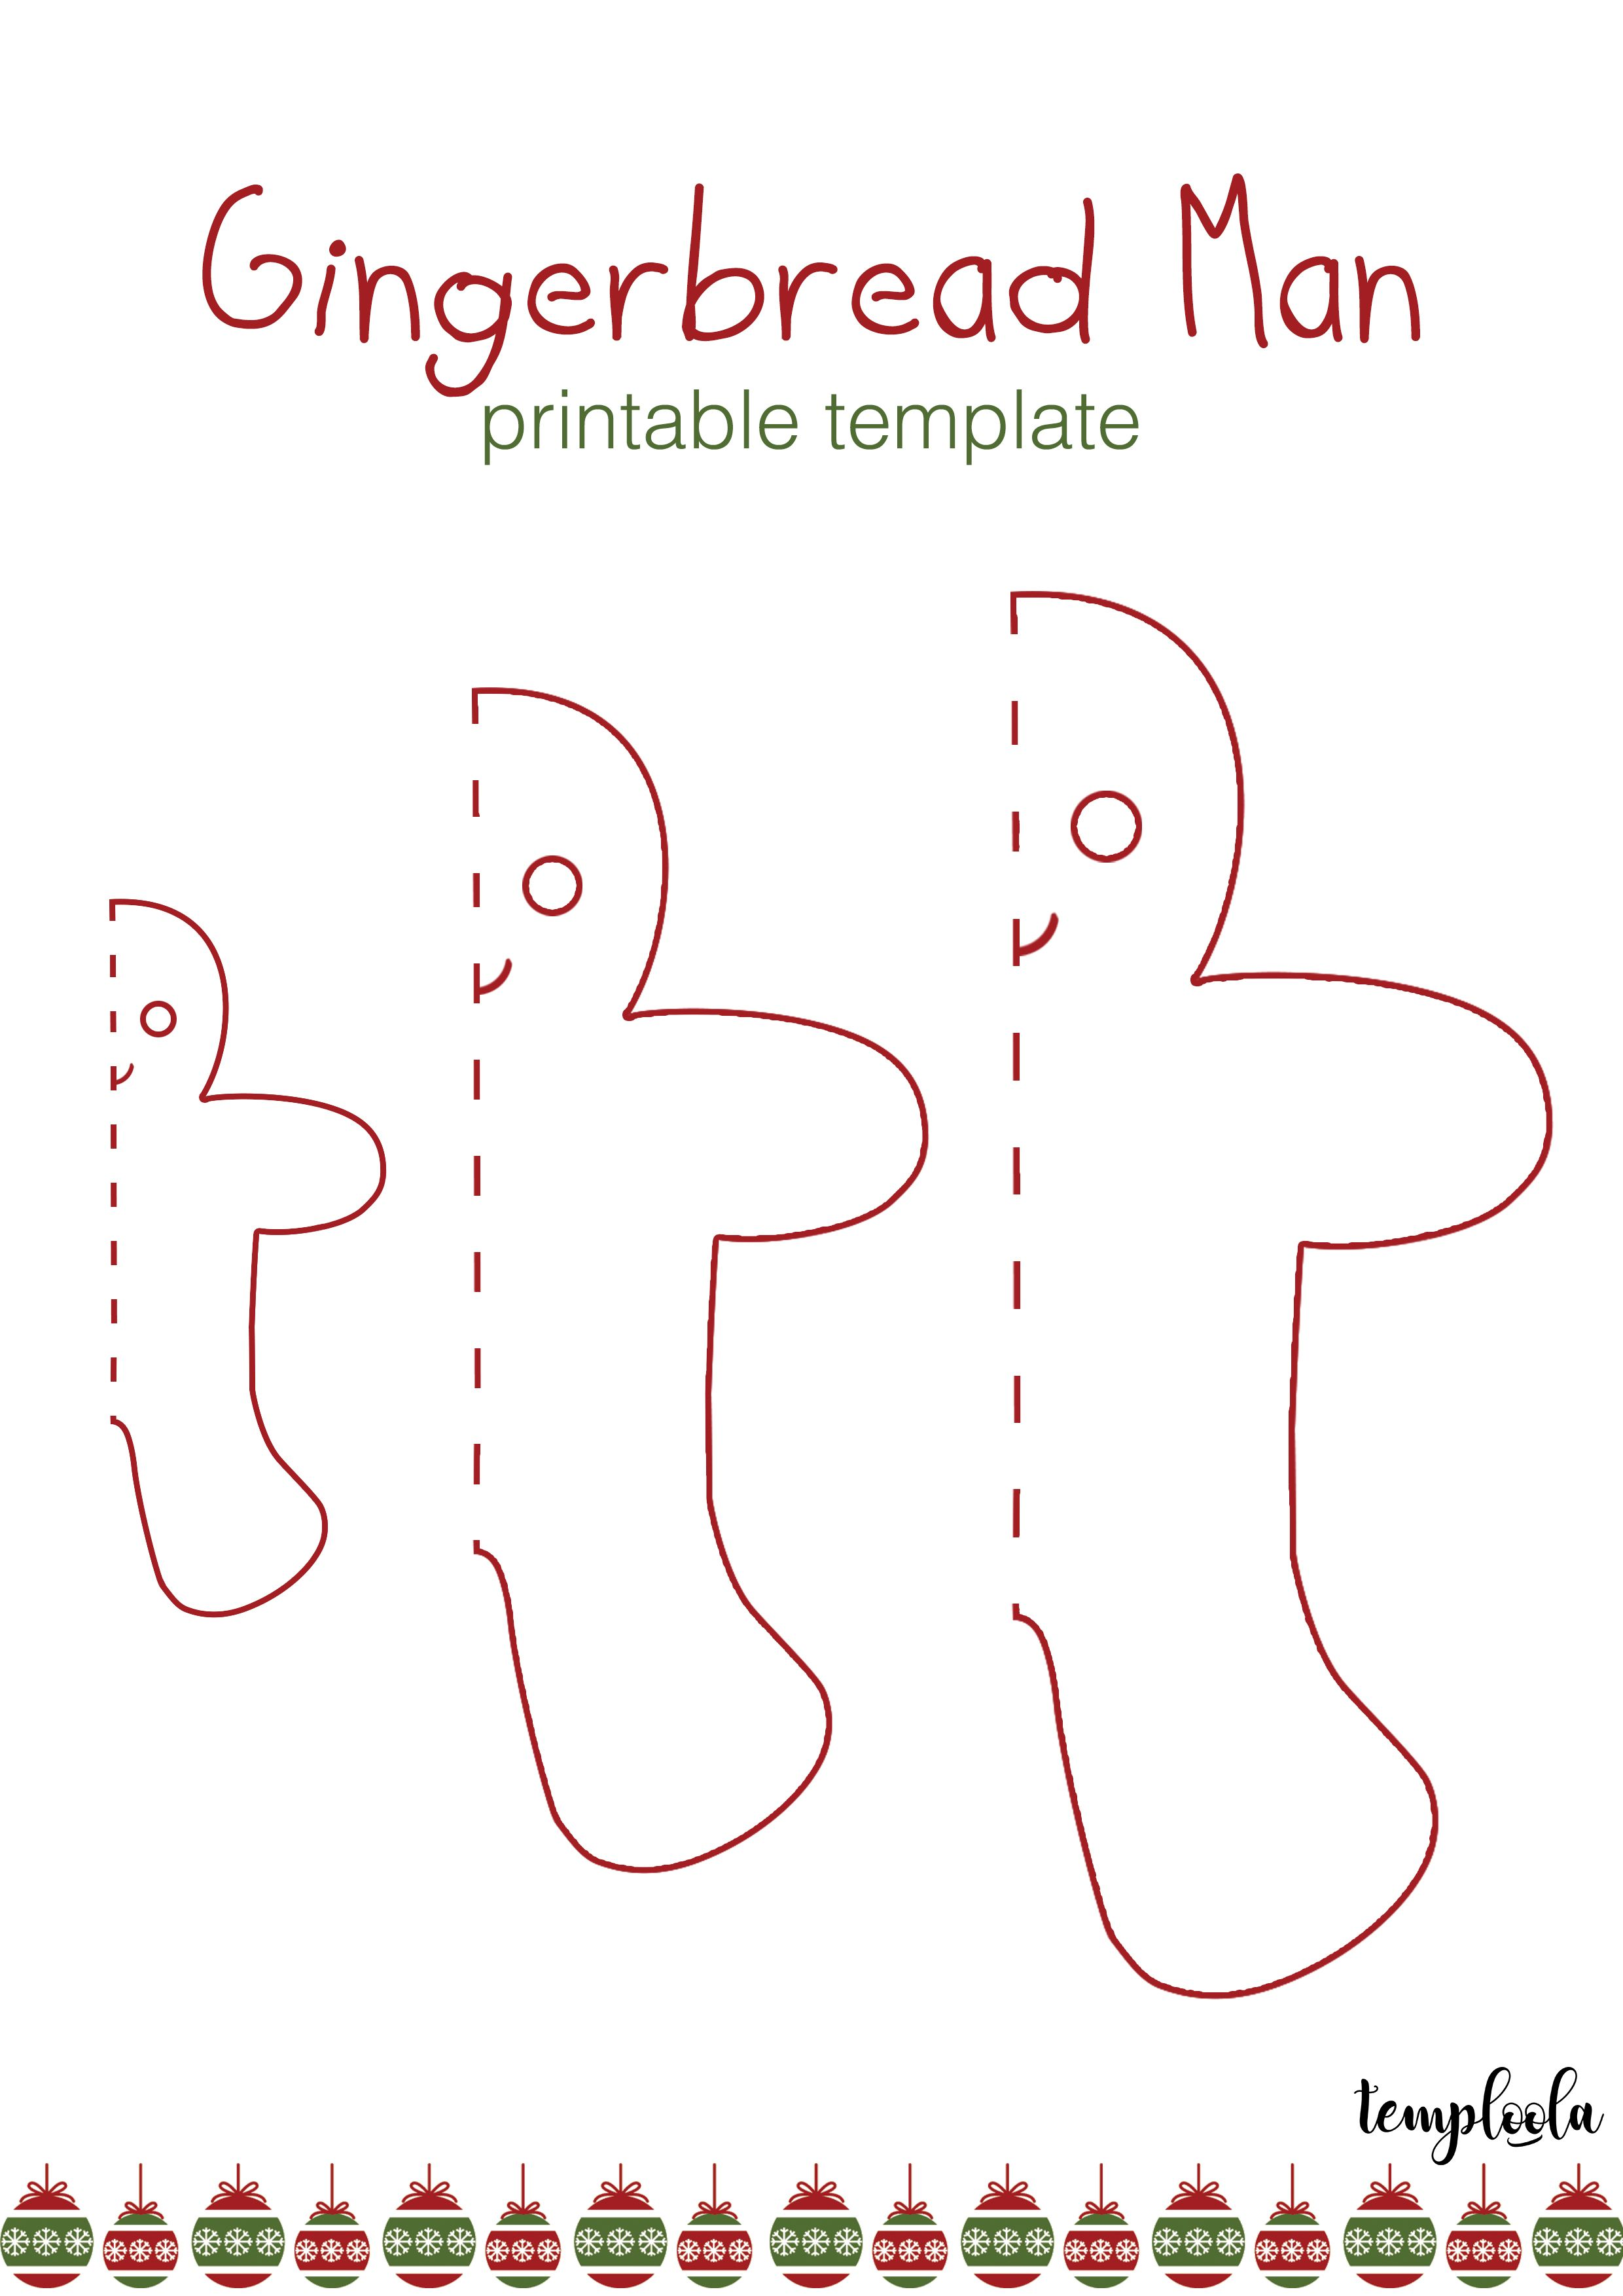 Lovely DIY project for Christmas Print the gingerbread man template